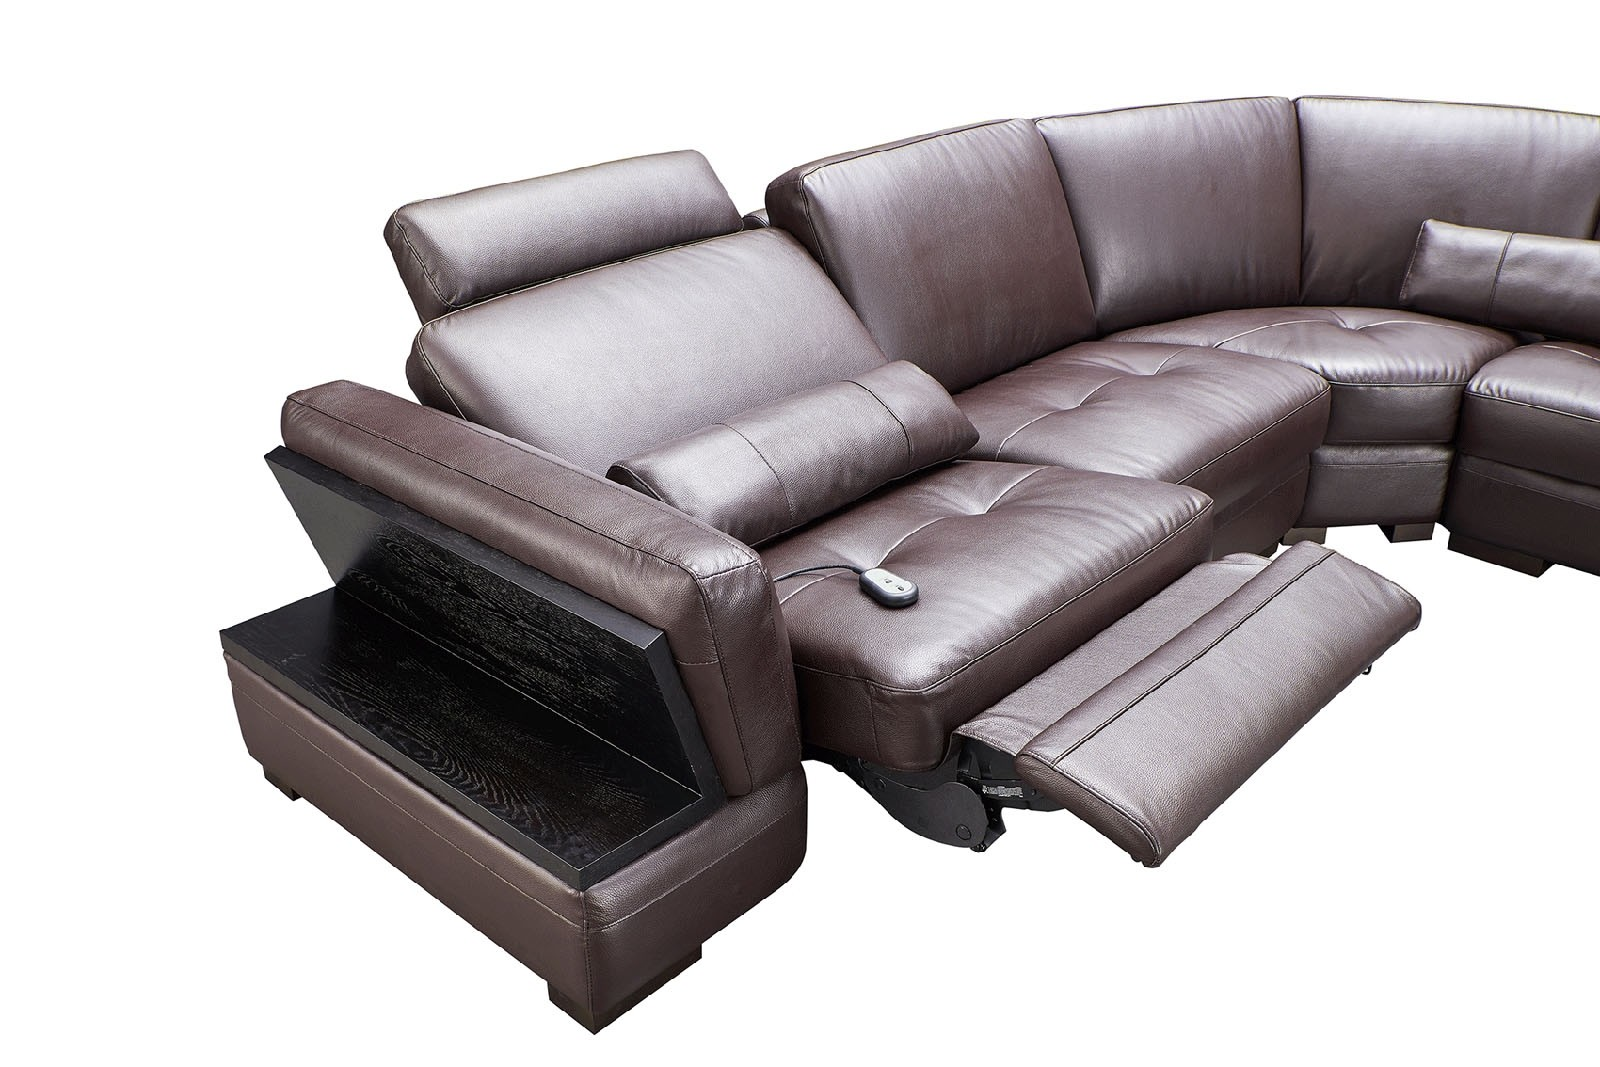 Large Reclining Sectional